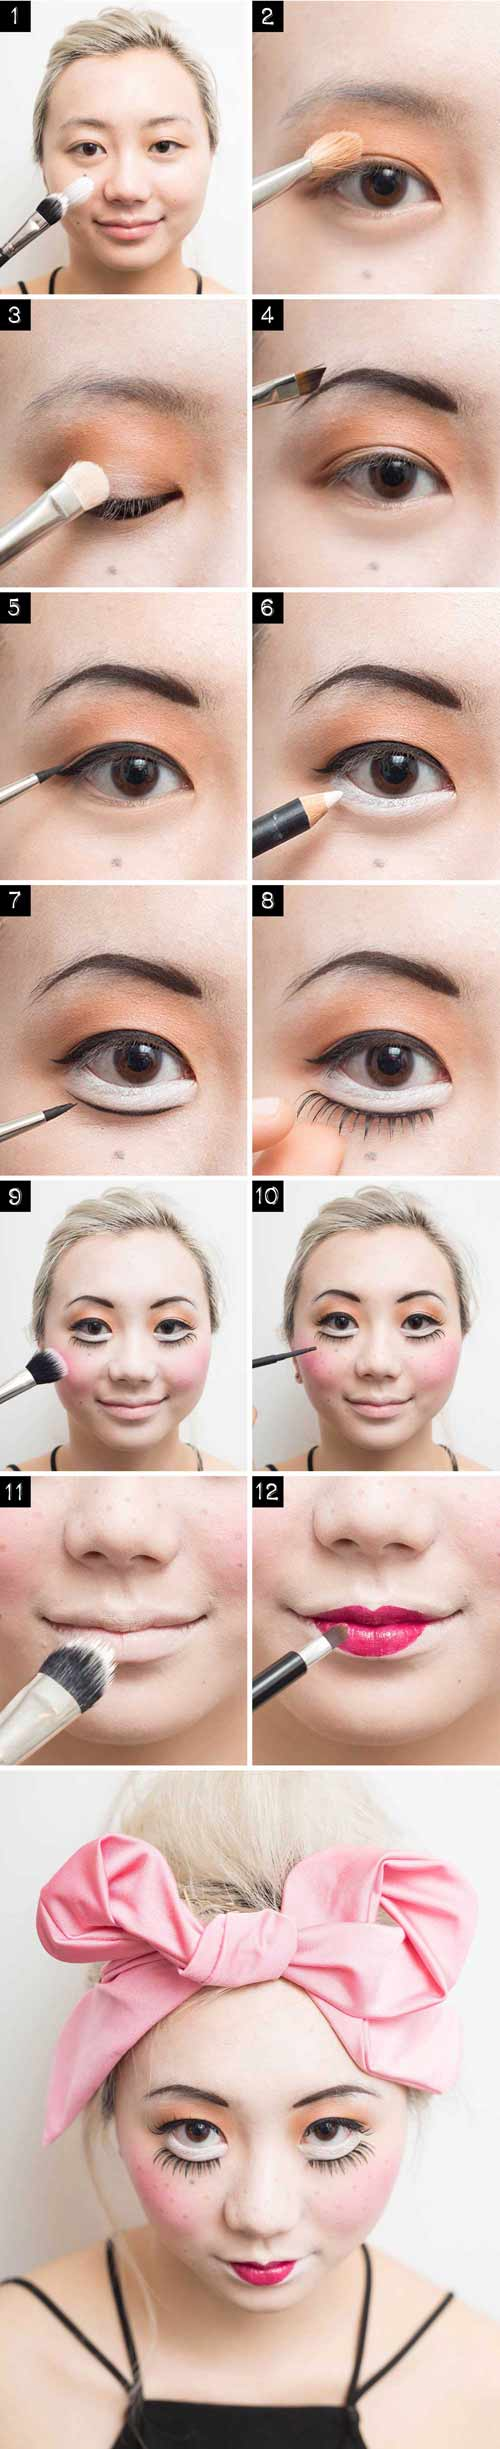 4 cach make-up cuc quai cho dem halloween chi rieng ban co - 4